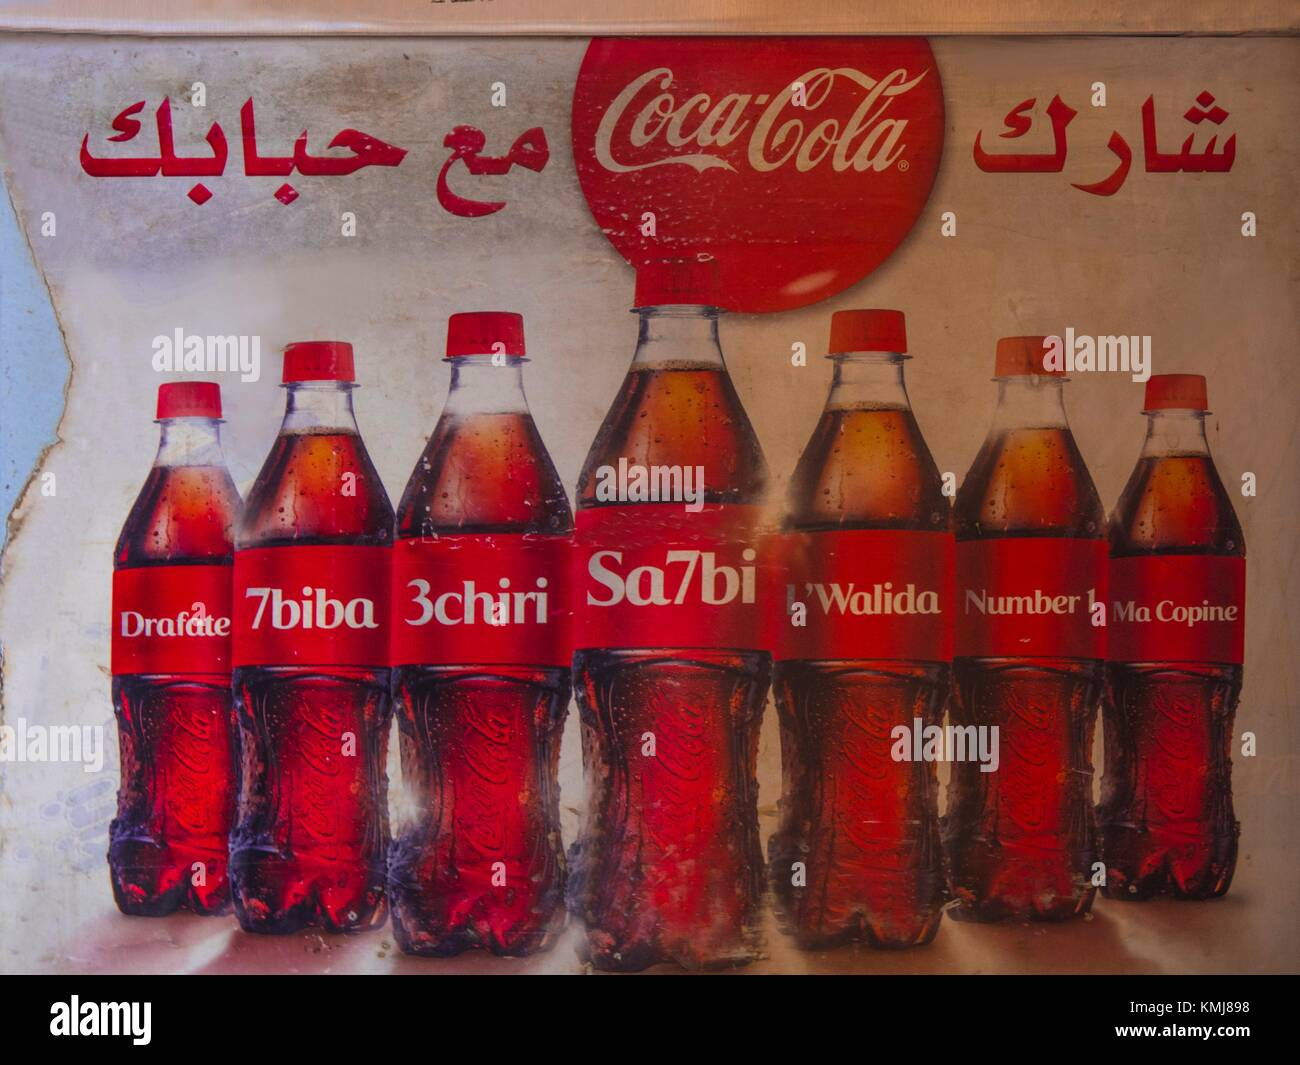 Morocco, Fes, publicity sign for Coca Cola, for all 'Drafate' (sweet)'7biba' (loved) '3chiri' - Stock Image